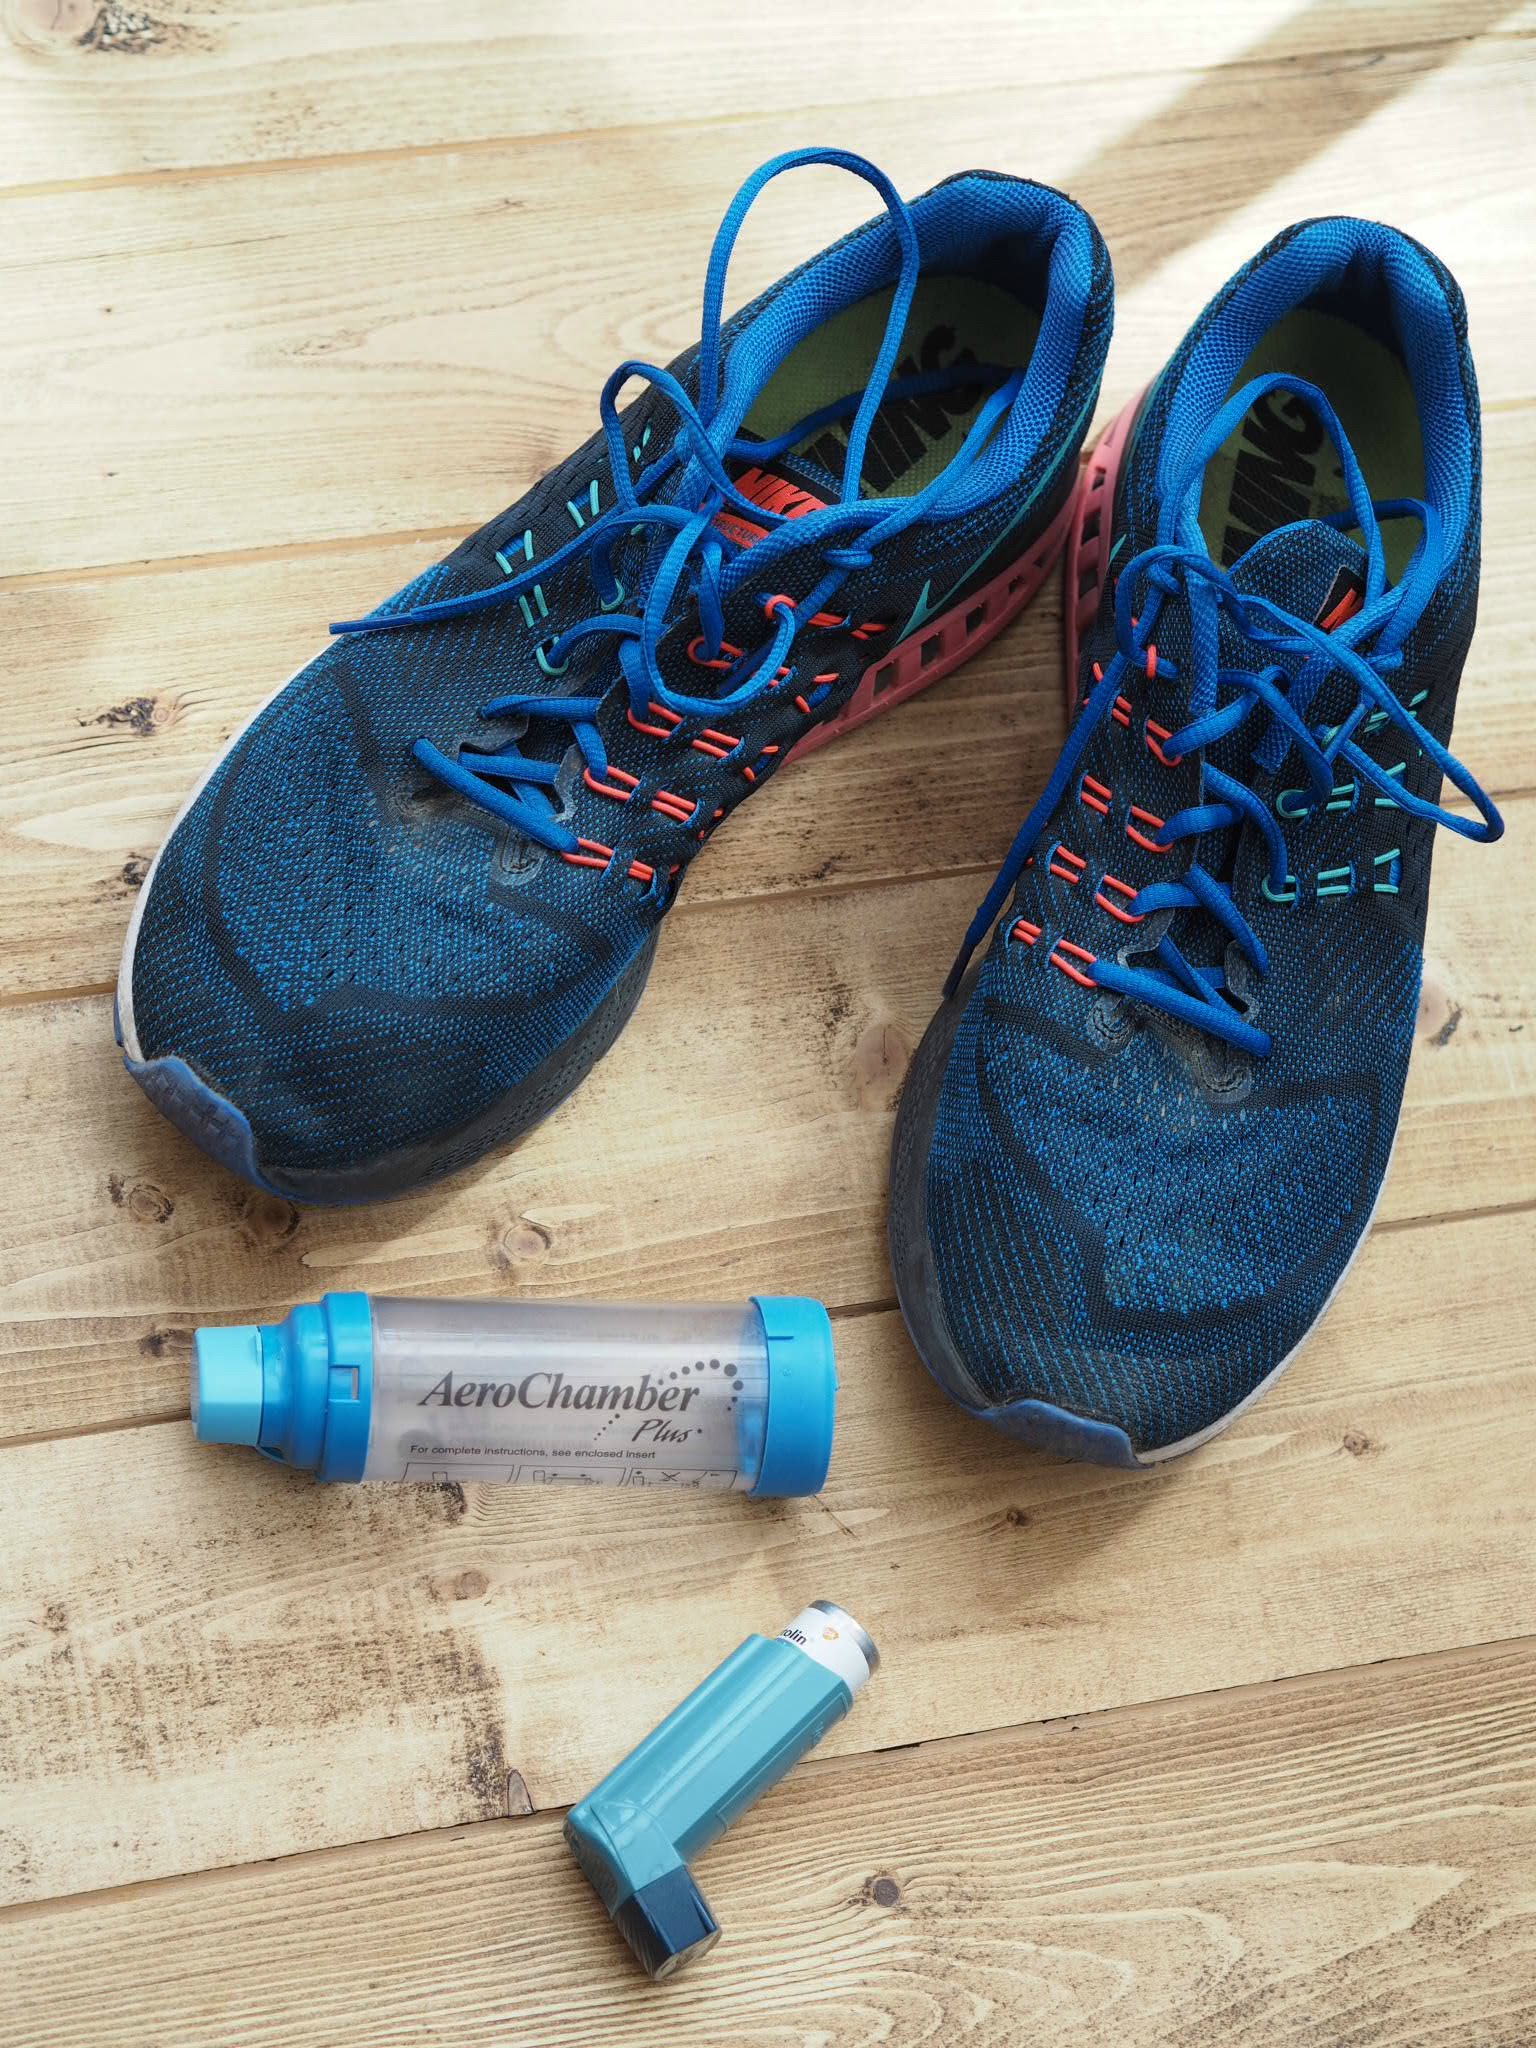 Heavy Breathing - Being Diagnosed Asthmatic as a Runner